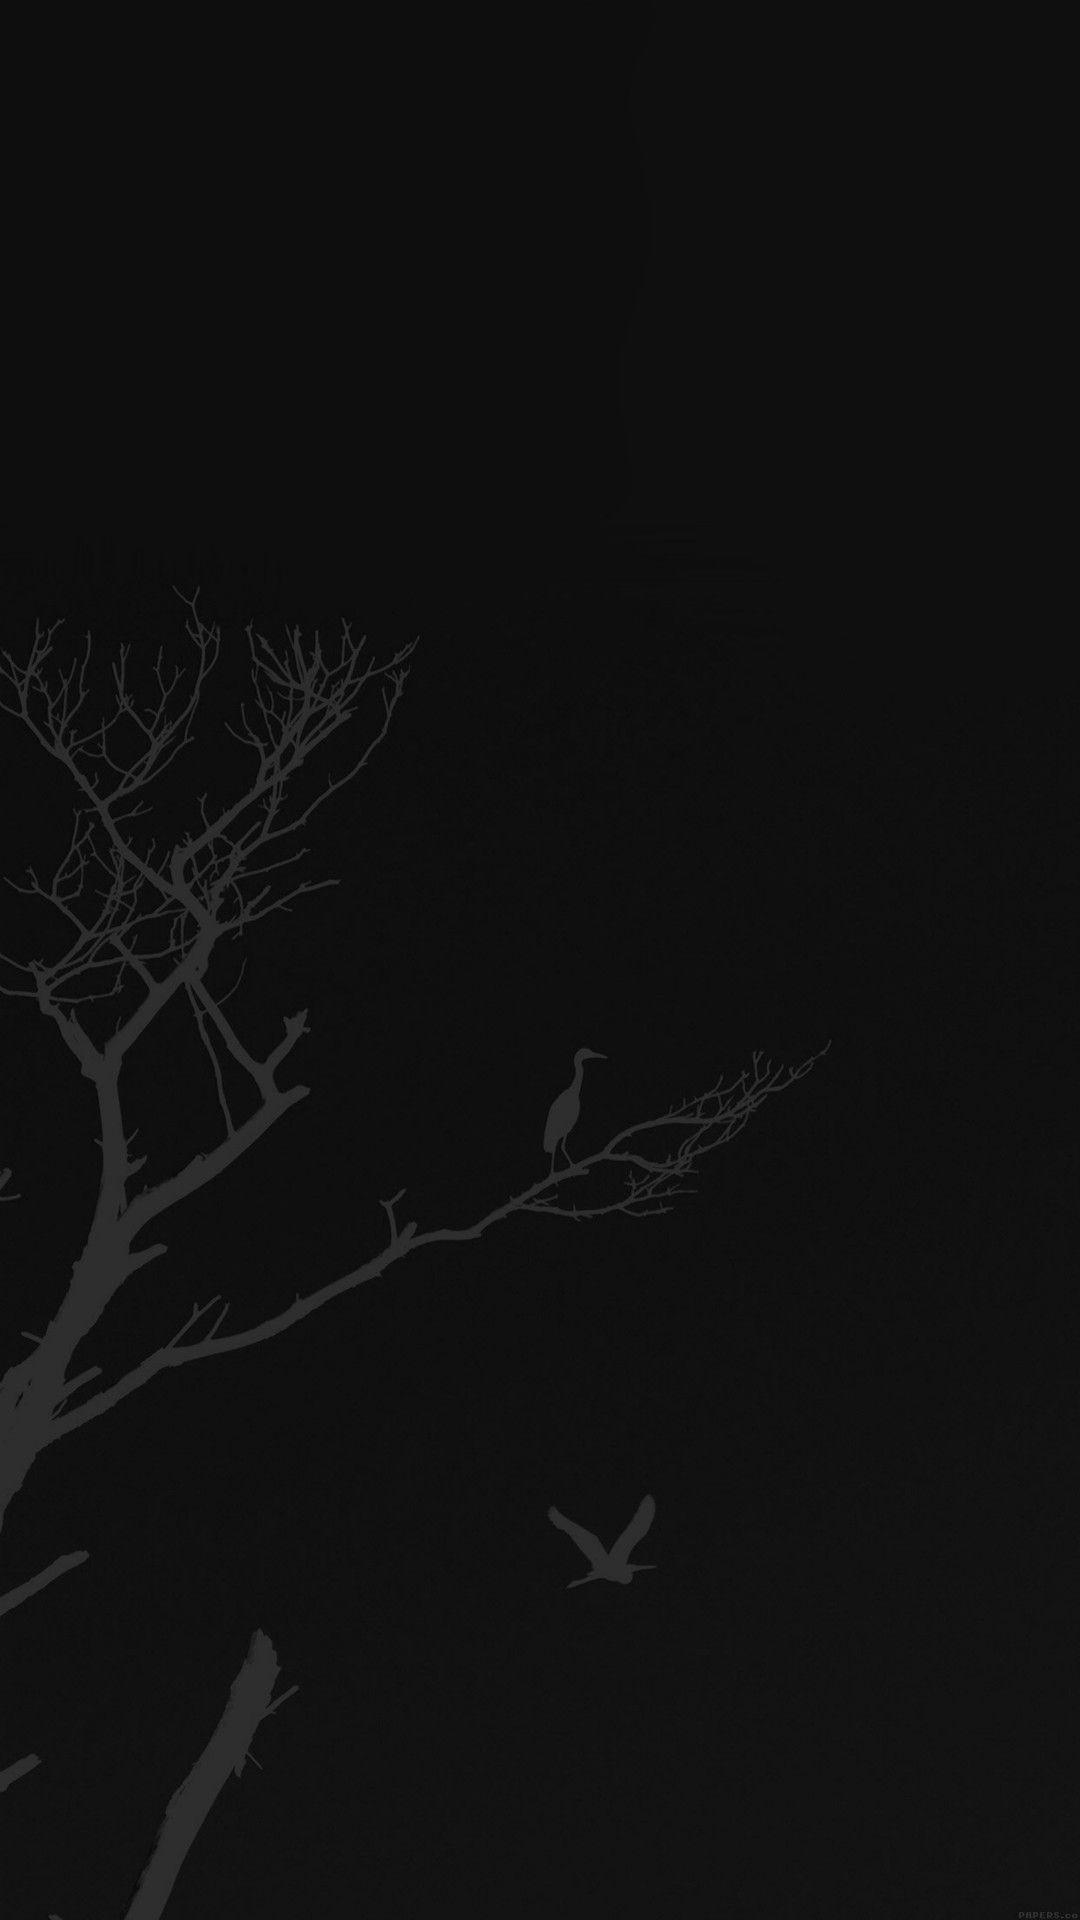 Minimalist Black and White Wallpapers